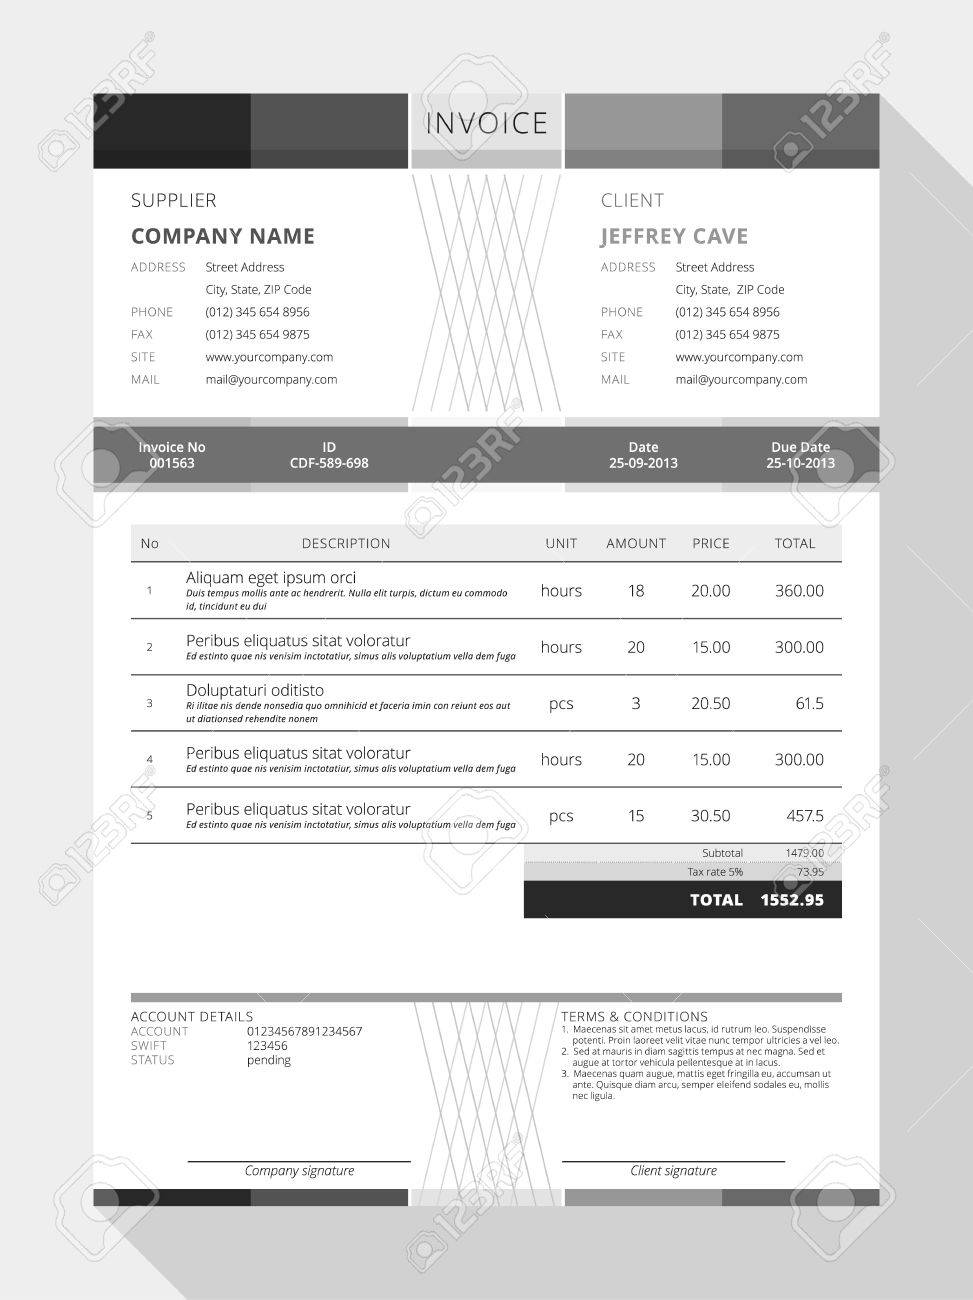 Reliefworkersus  Nice Design An Invoice  Professional Graphic Design Invoice  With Excellent Vector Customizable Invoice Form Template Design Vector   Design An Invoice With Charming Charitable Donation Receipt Also Can I Return Something To Walmart Without A Receipt In Addition Home Depot Receipt Lookup And Receipt Hog App As Well As Tj Maxx Return Policy No Receipt Additionally Enterprise Toll Receipts From Happytomco With Reliefworkersus  Excellent Design An Invoice  Professional Graphic Design Invoice  With Charming Vector Customizable Invoice Form Template Design Vector   Design An Invoice And Nice Charitable Donation Receipt Also Can I Return Something To Walmart Without A Receipt In Addition Home Depot Receipt Lookup From Happytomco